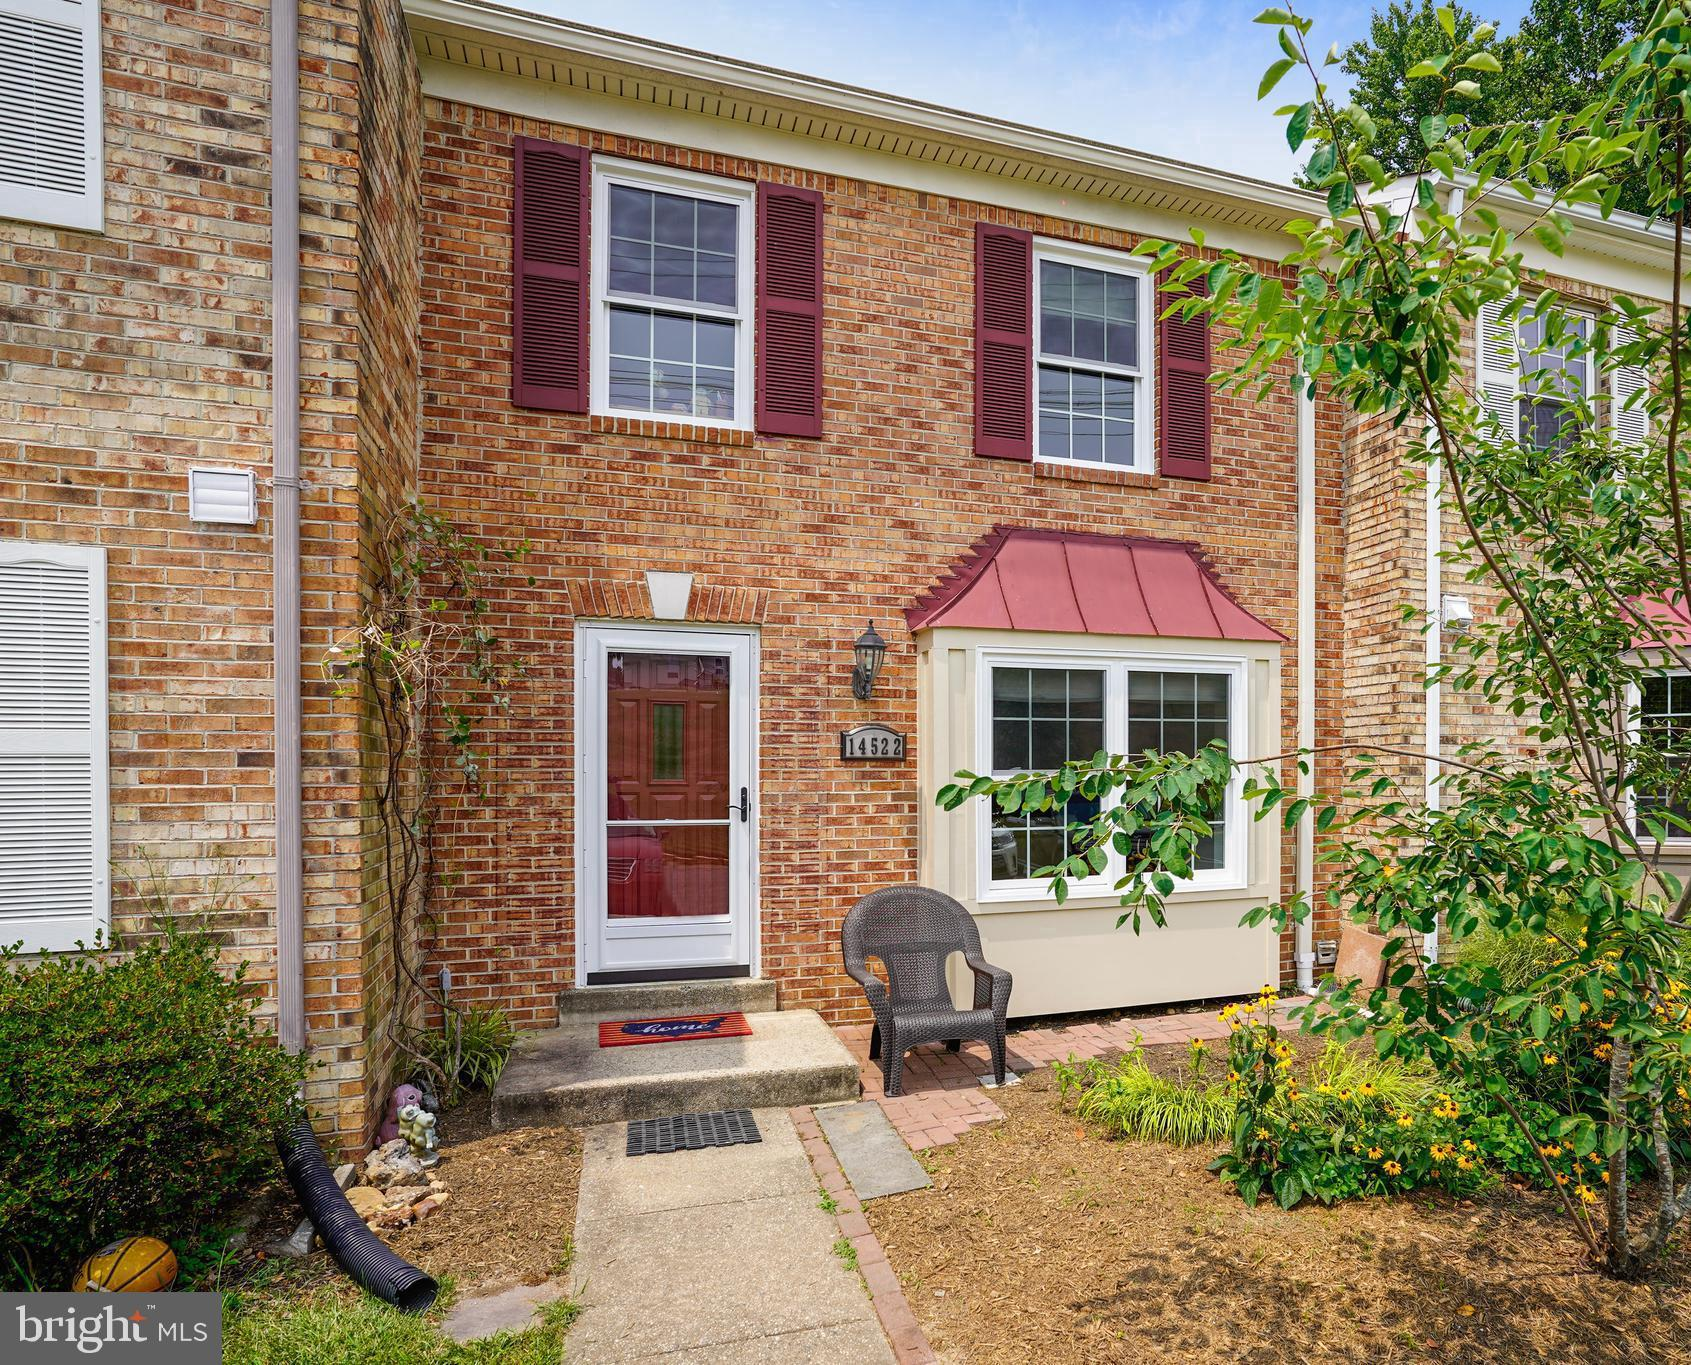 IF YOU'RE LOOKING FOR A TRULY MOVE-IN READY TOWNHOME, DON'T MISS THIS BEAUTIFULLY-UPDATED TOWNHOME B